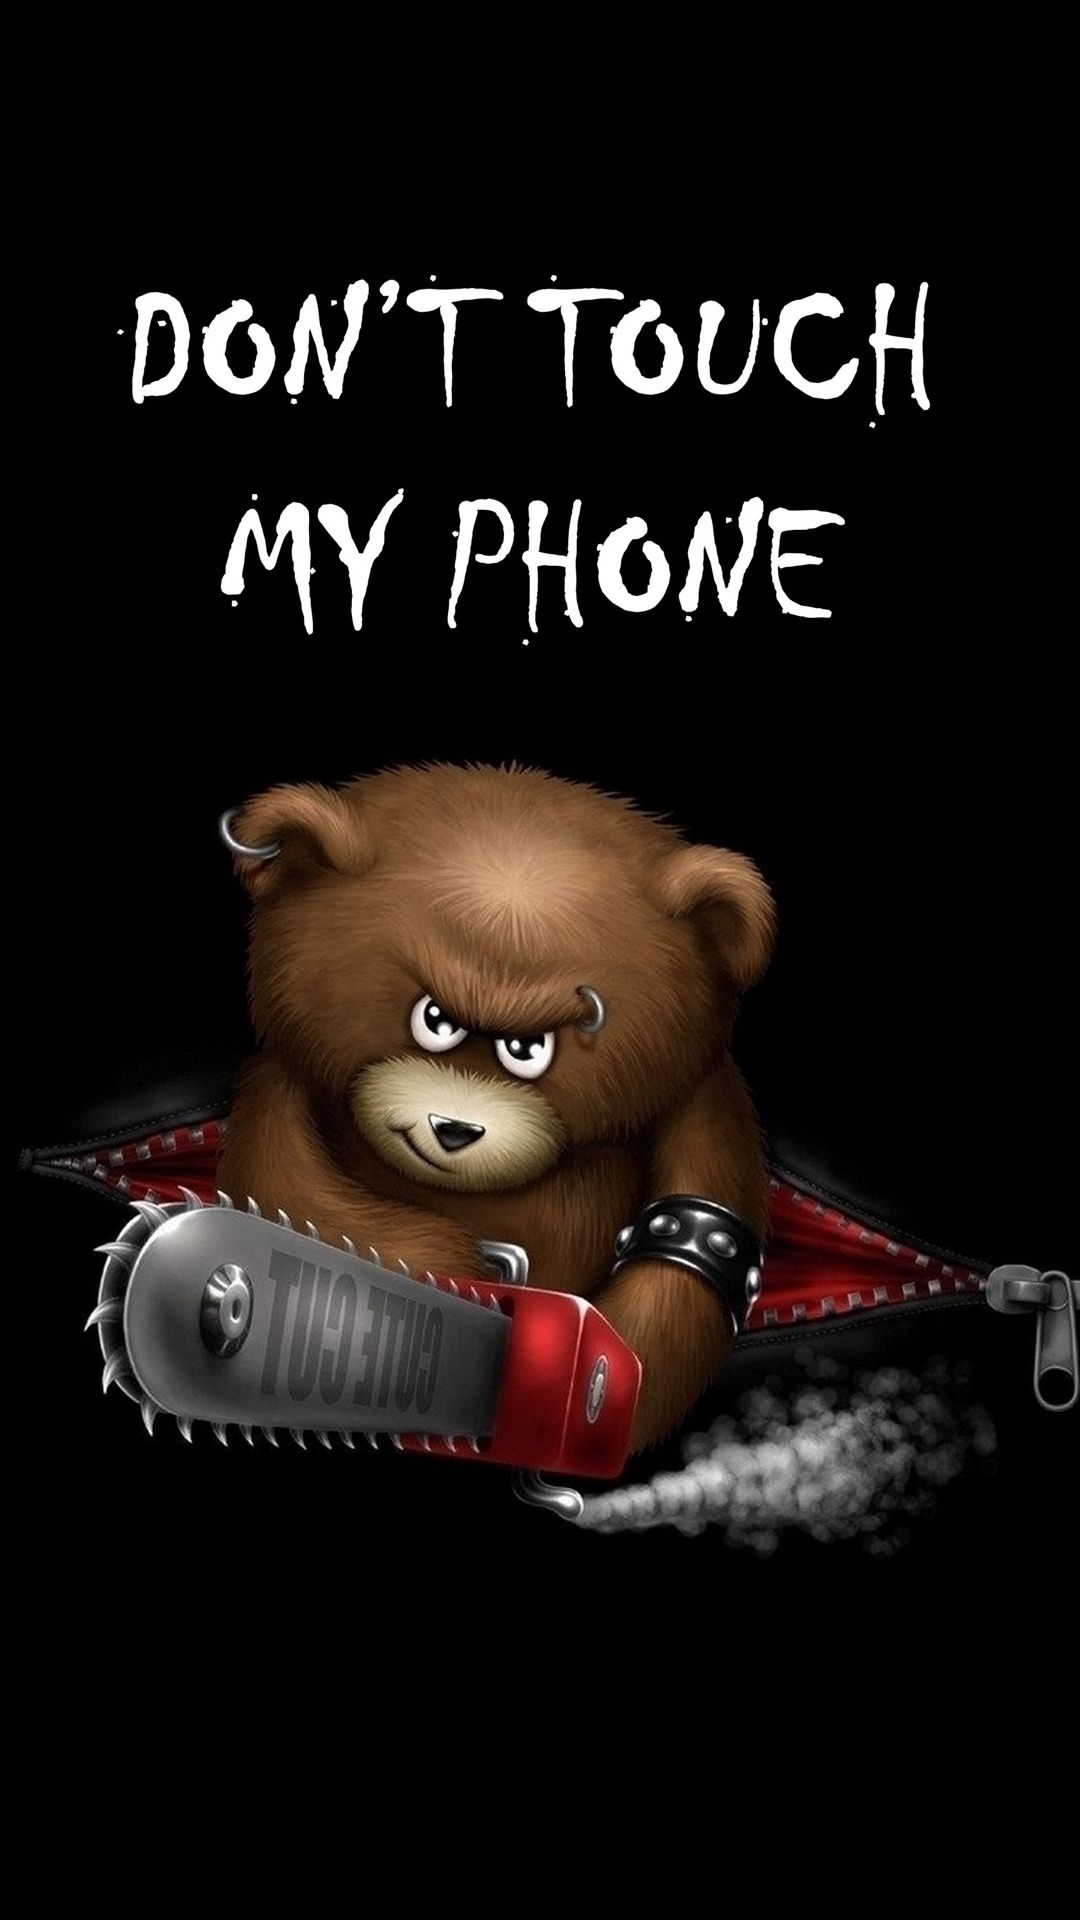 Quotes Donu0027t Touch My Phone Black Angry Teddy Bear With Сhainsaw Saw  Piercing Cool Scary HD IPhone 6 Plus Wallpaper